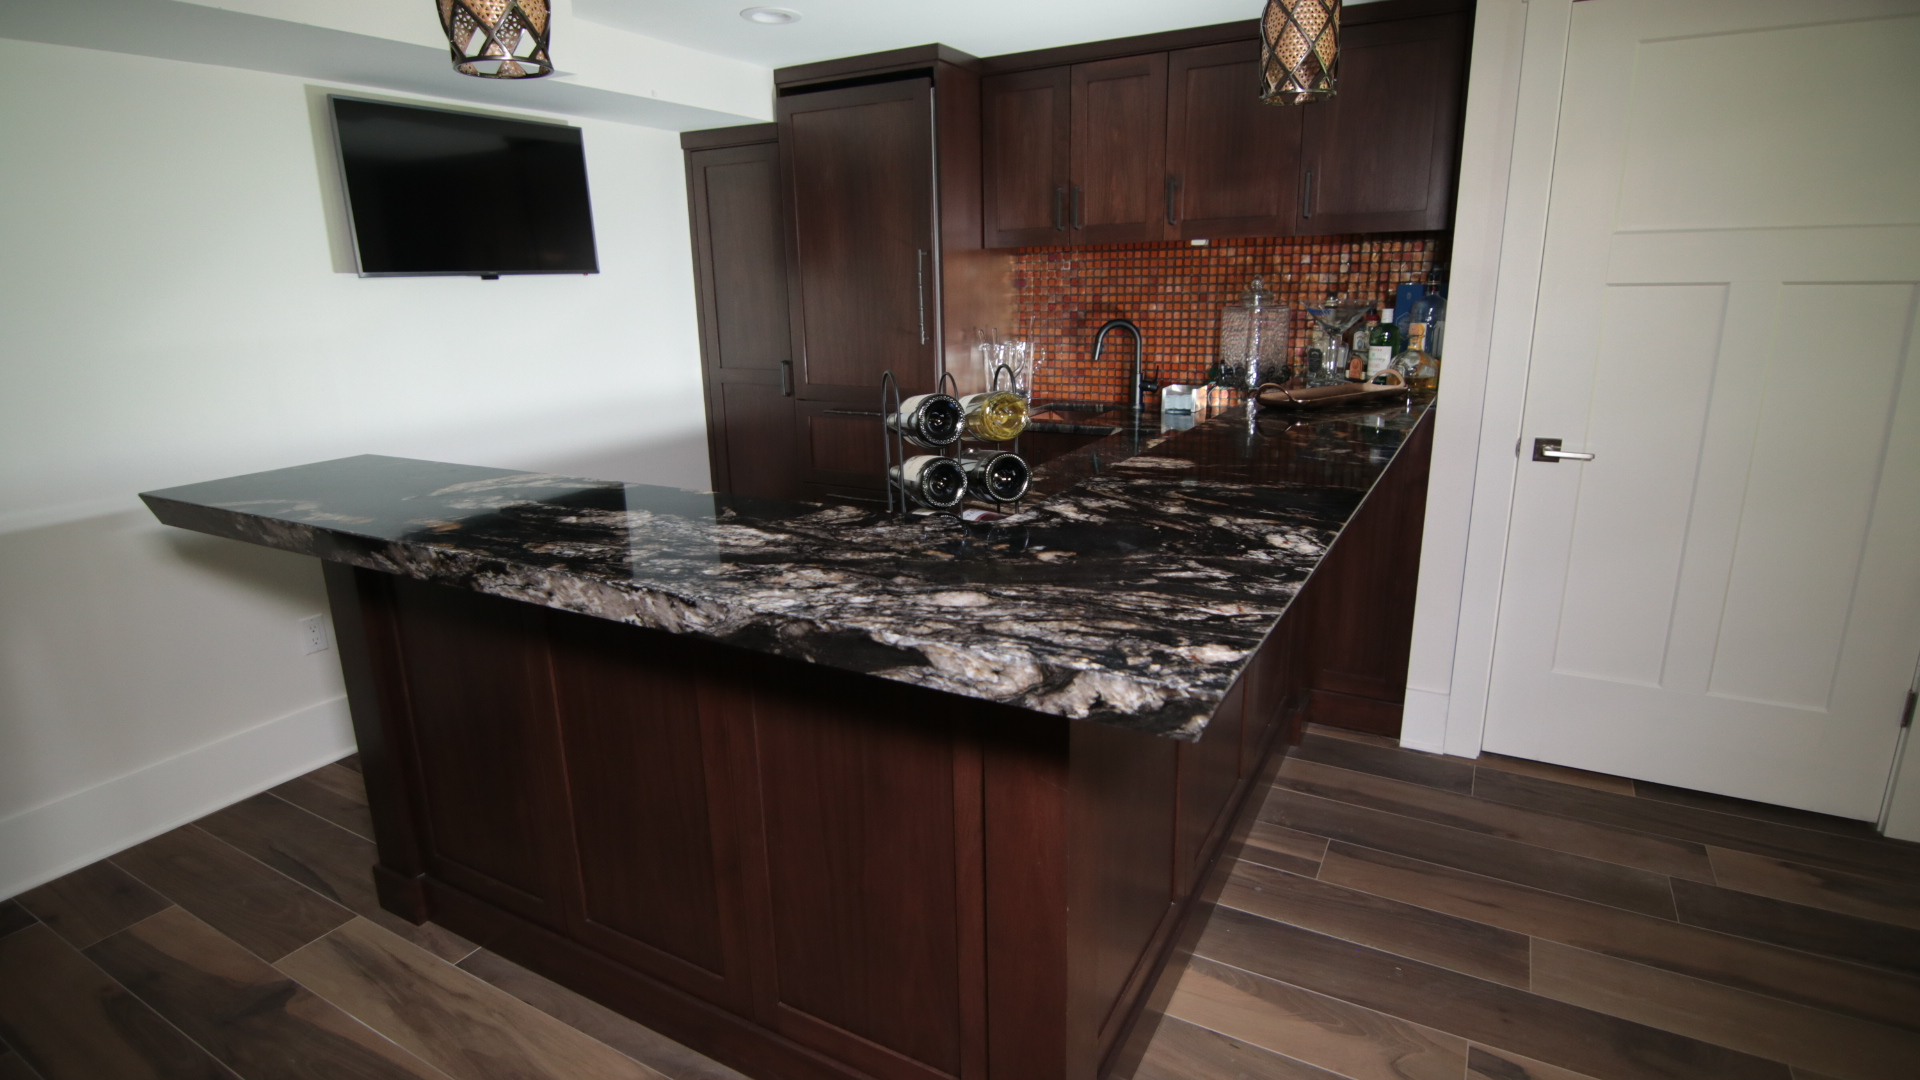 Peachy Reasons Why You Should Get Custom Cabinets Amc Granite Download Free Architecture Designs Embacsunscenecom